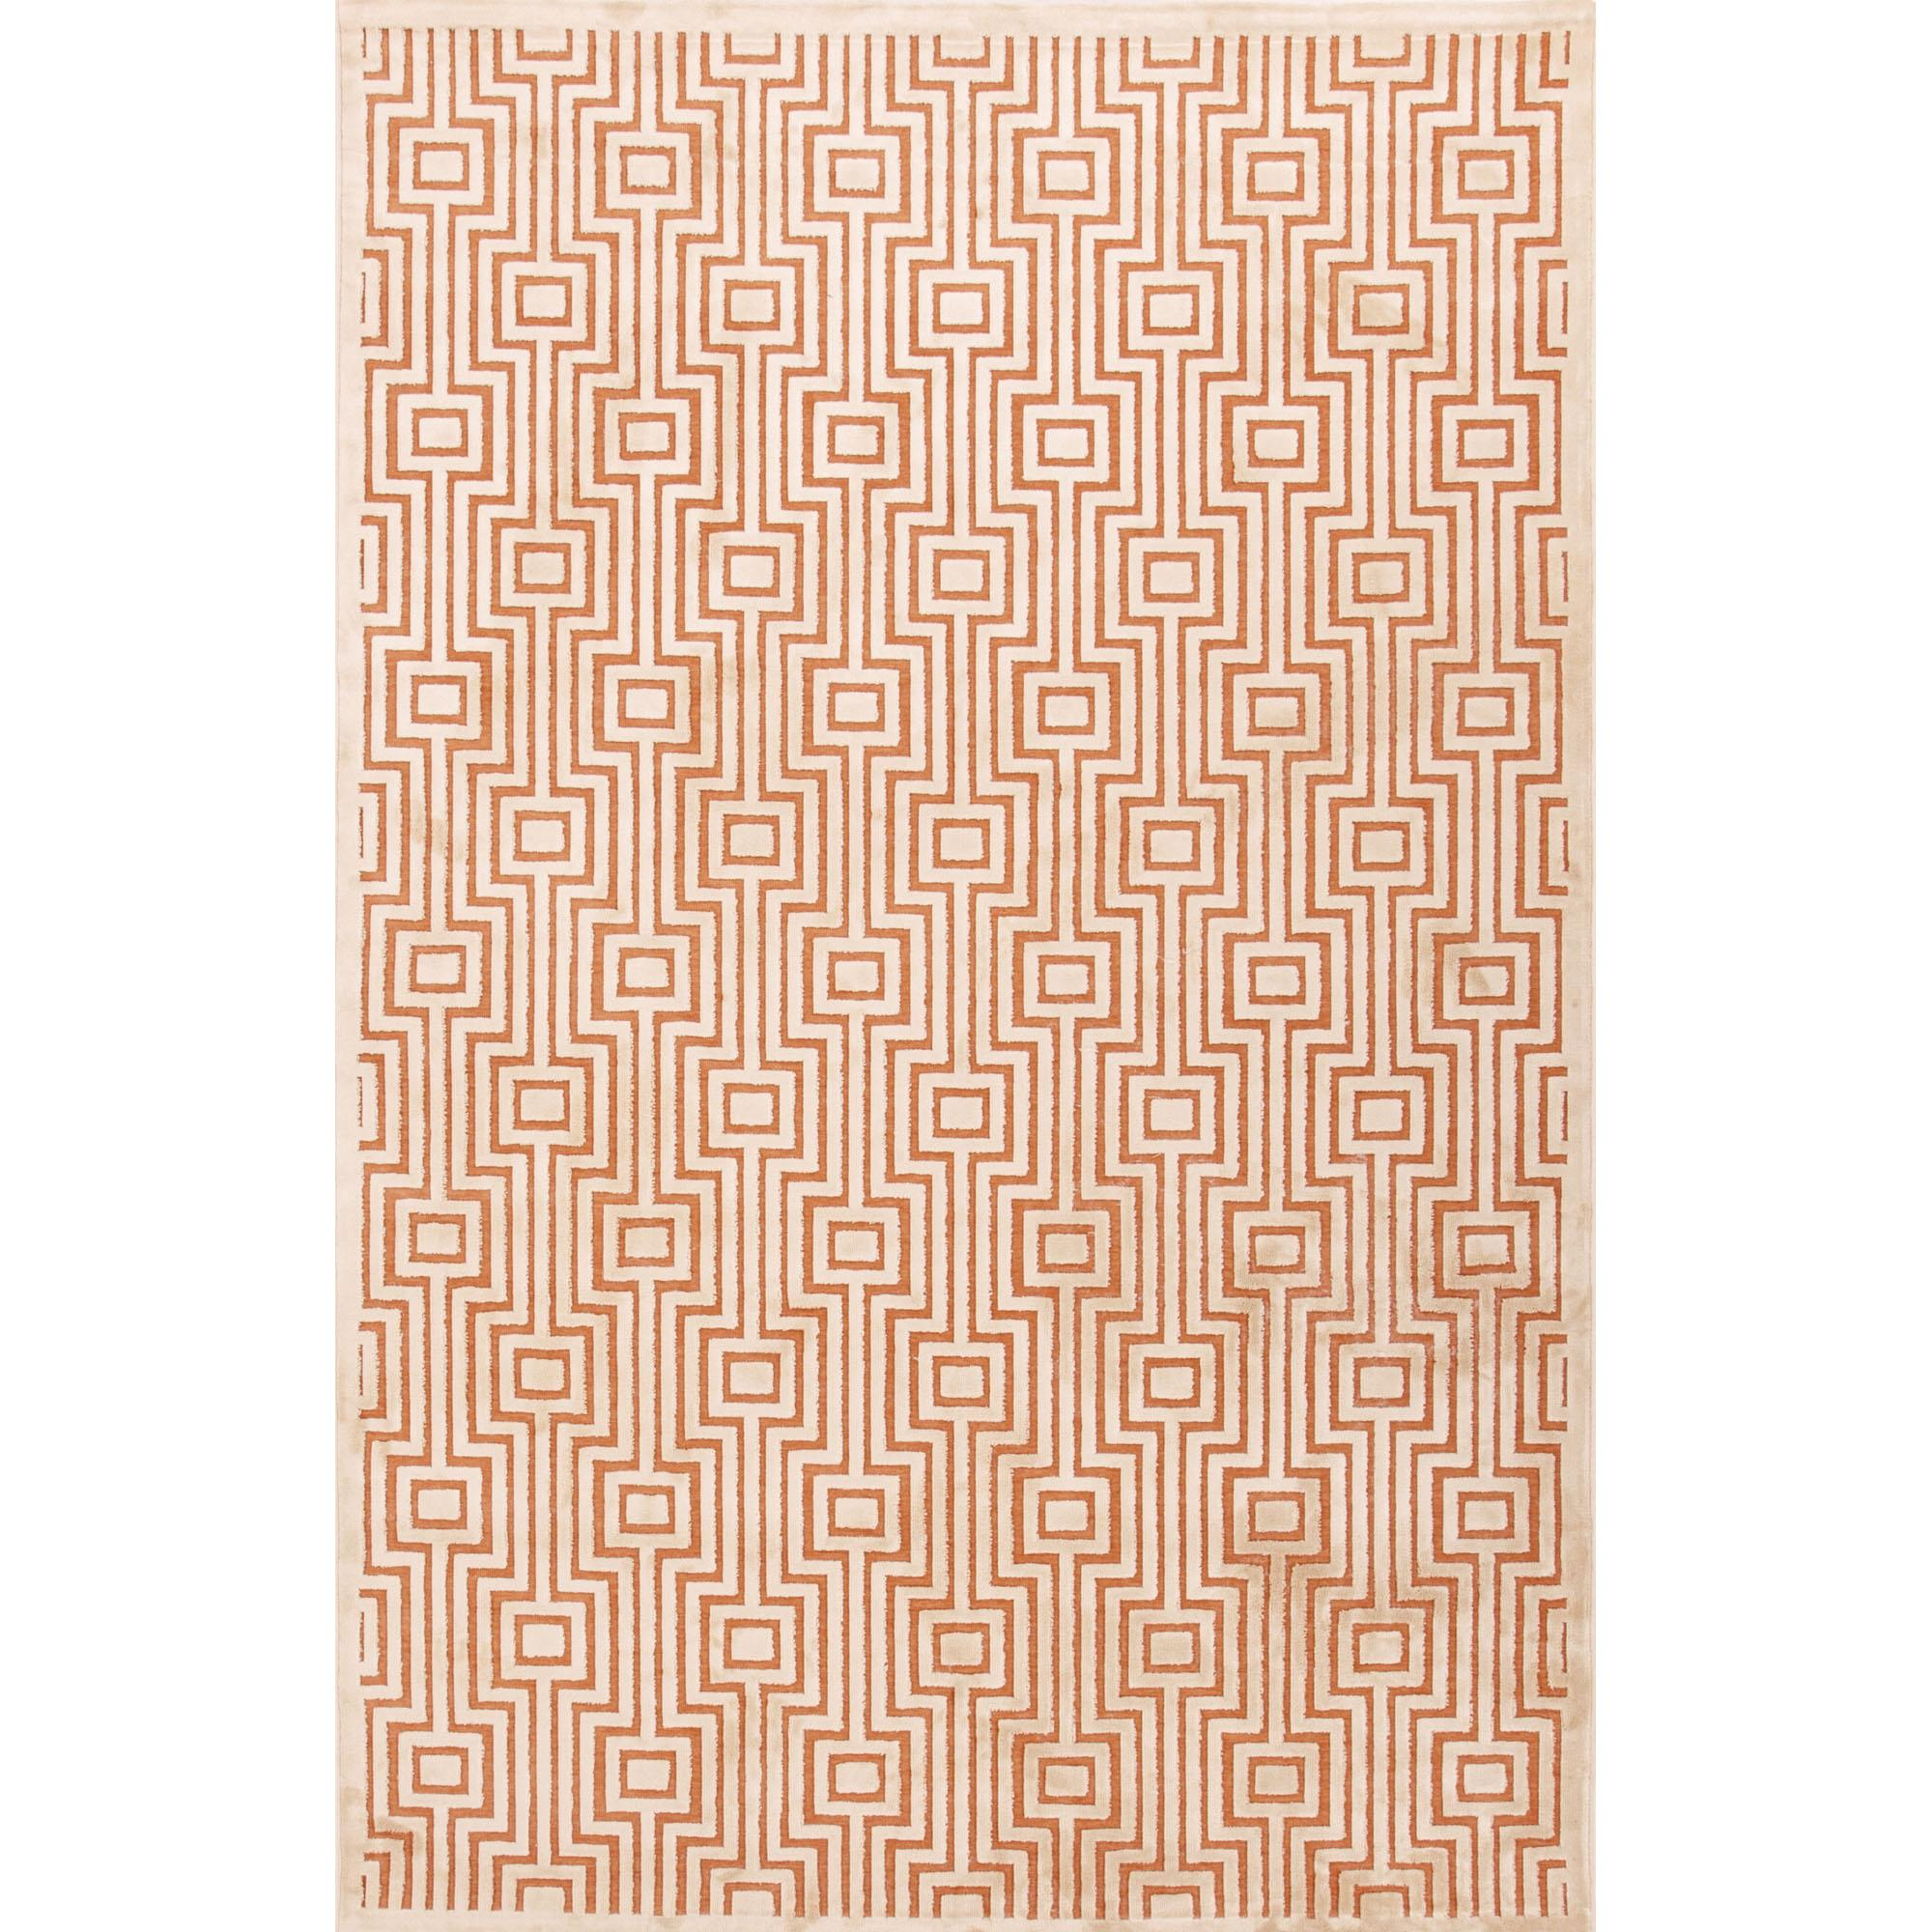 JAIPUR Rugs Fables 5 x 7.6 Rug - Item Number: RUG101598